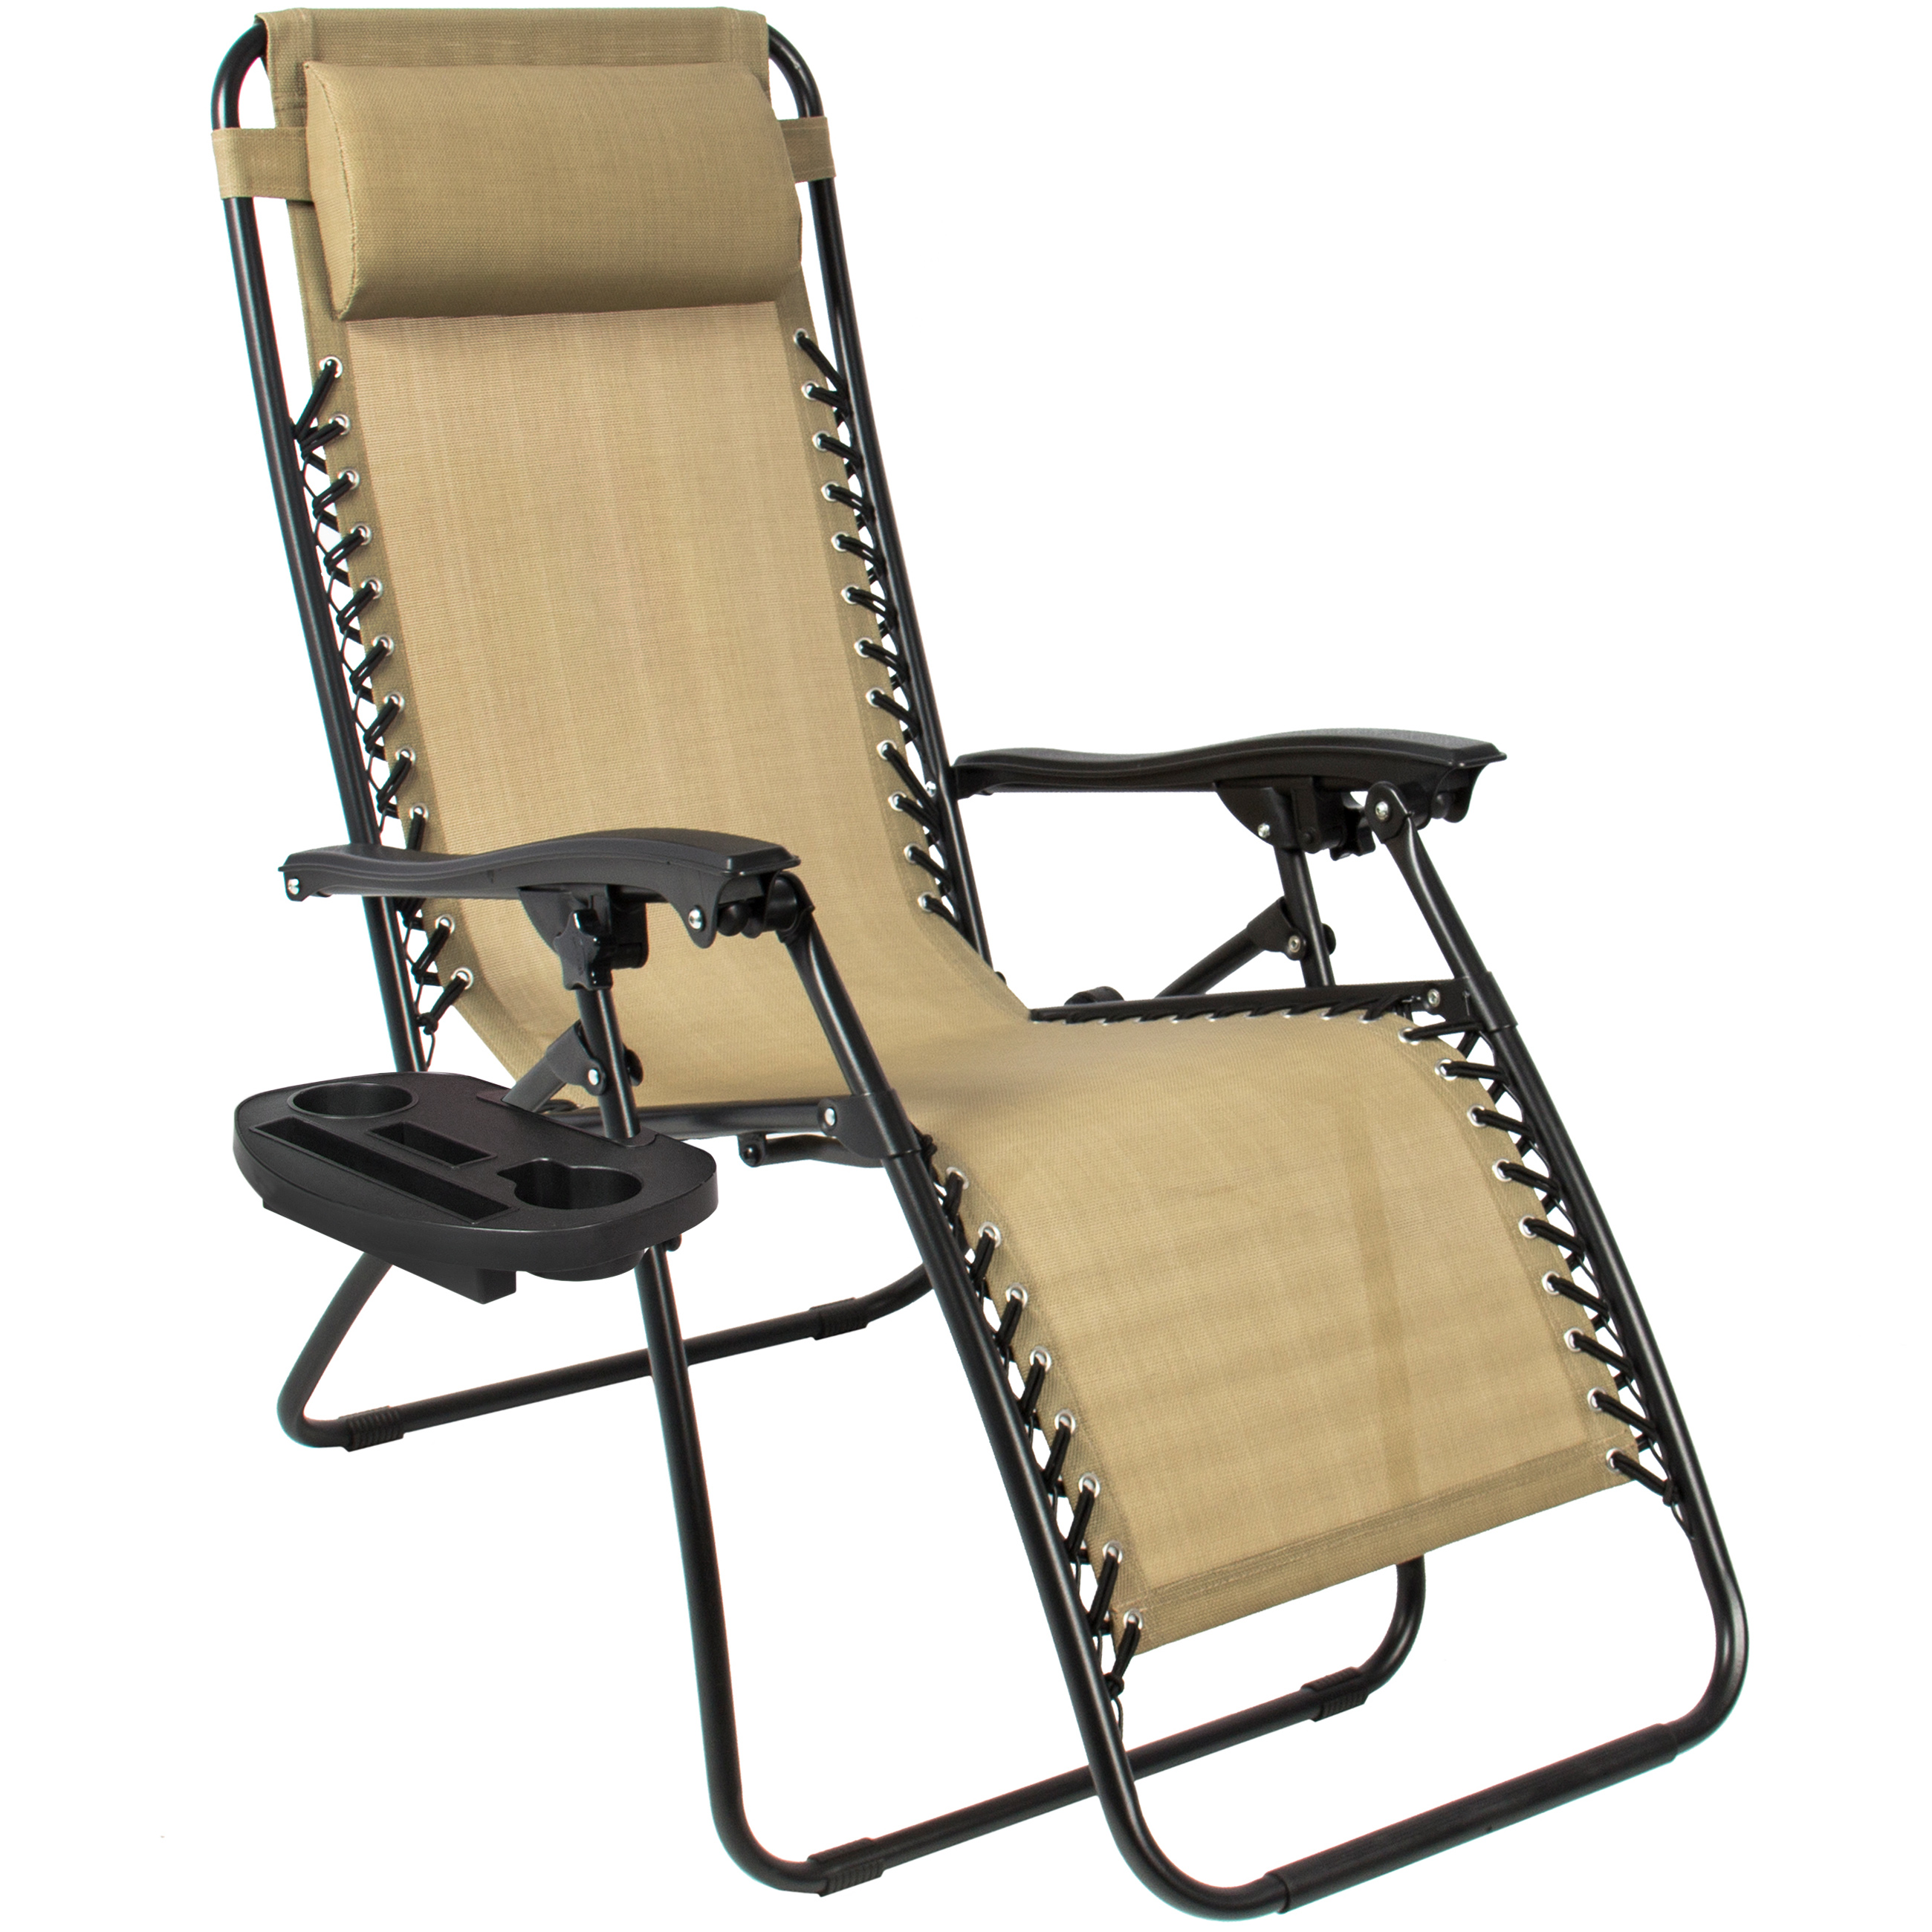 zero gravity chairs case of 2 tan lounge patio chairs outdoor yard beach new